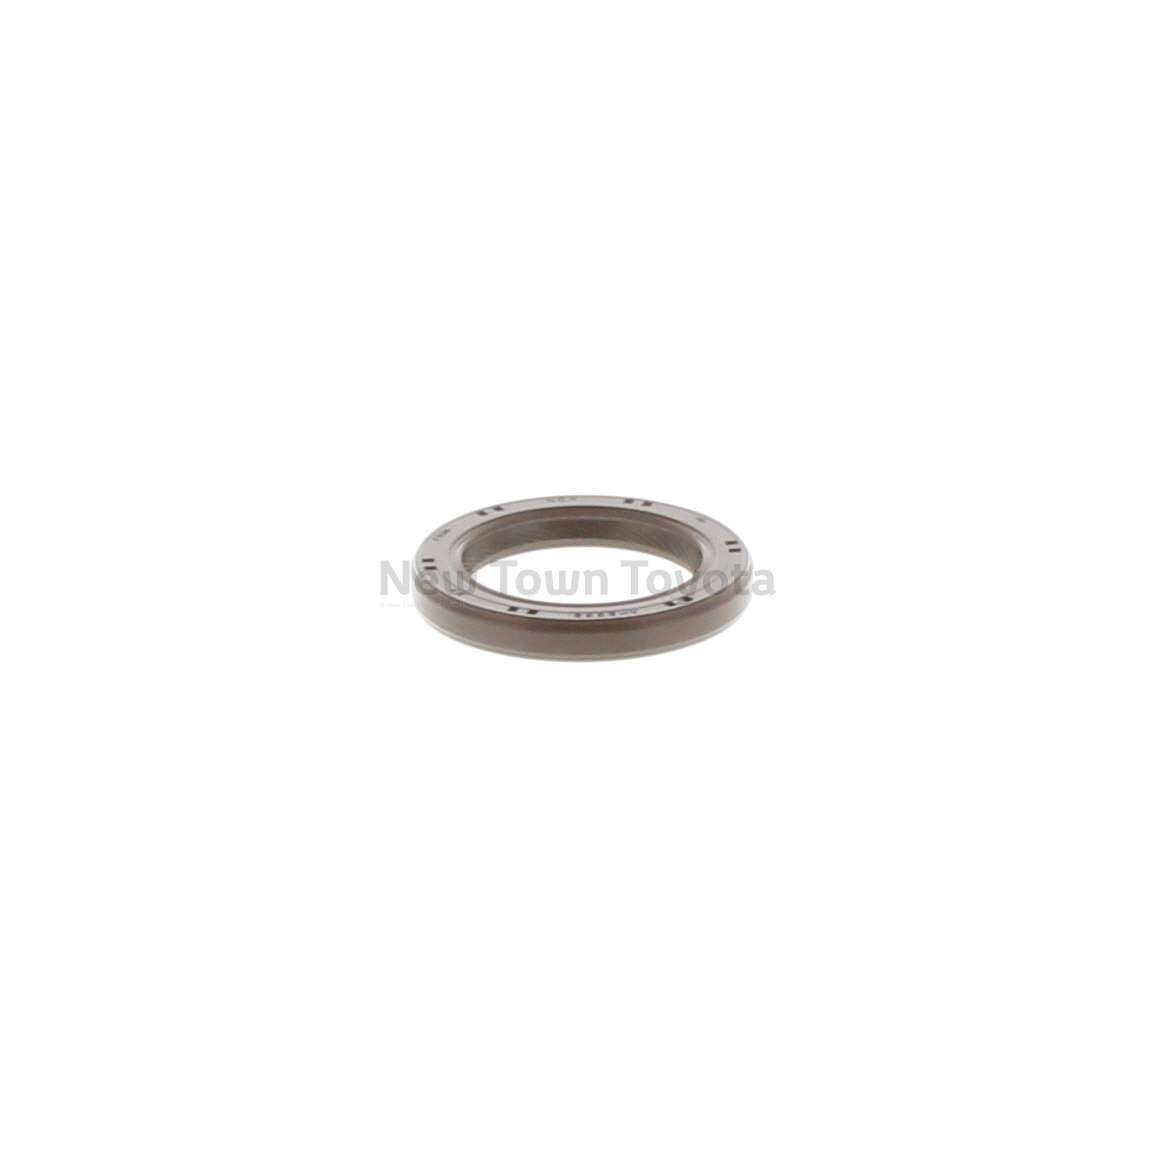 Genuine Toyota Engine Front Timing Cover Oil Seal